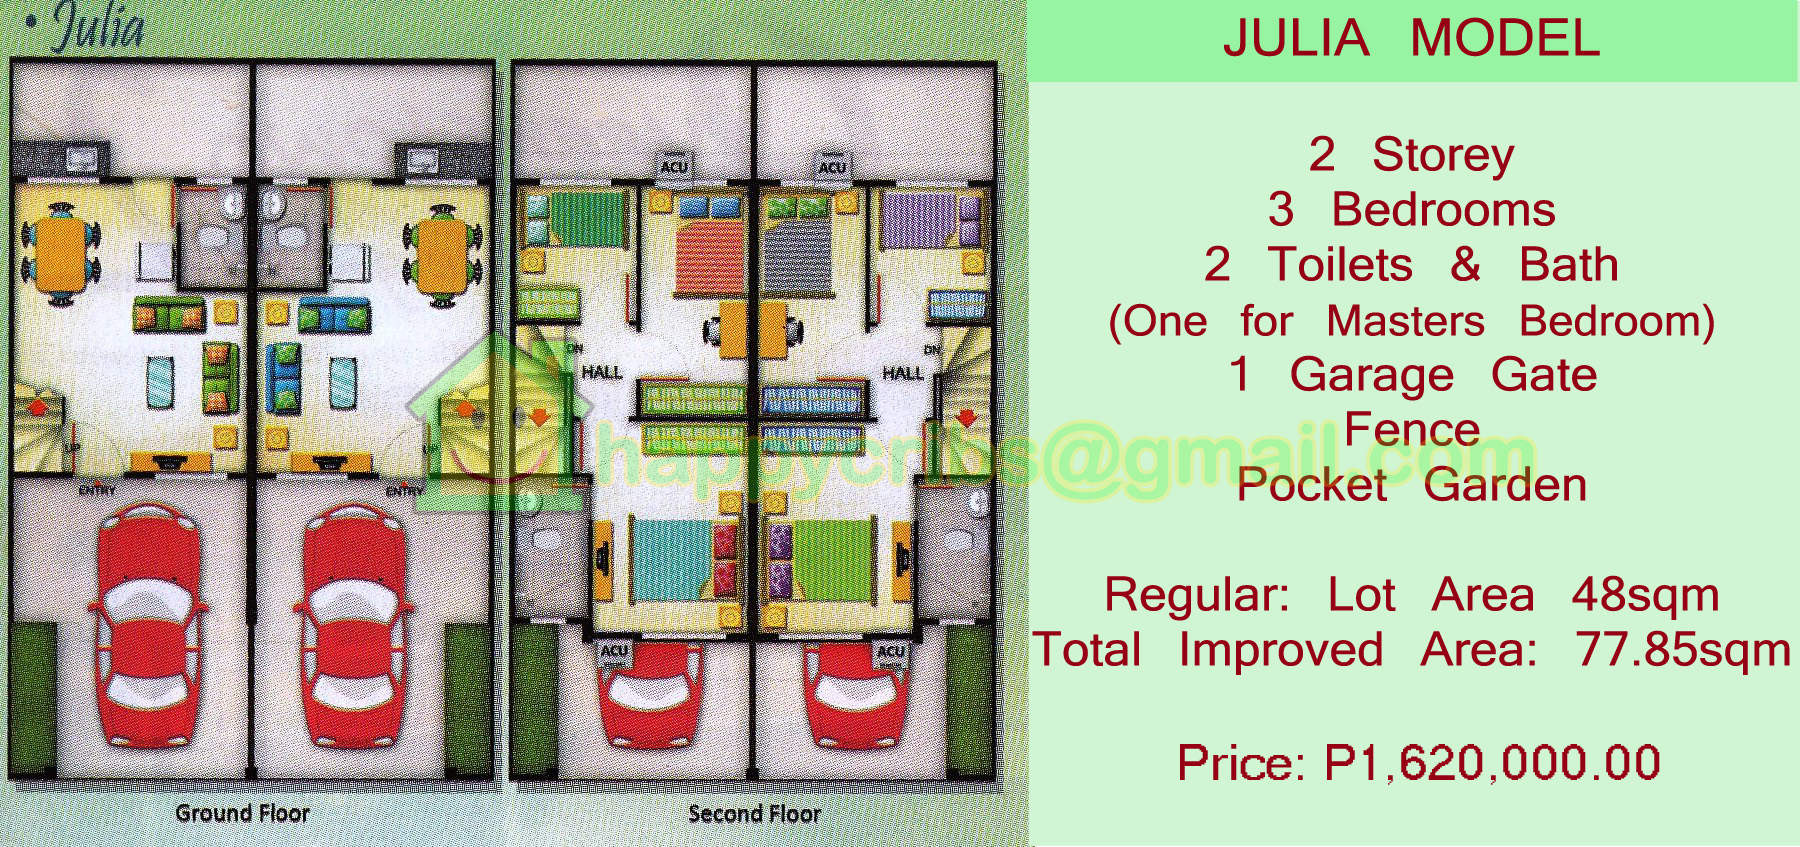 JULIA MODEL FLOOR PLAN, 3 BEDROOMS, 2 T&B